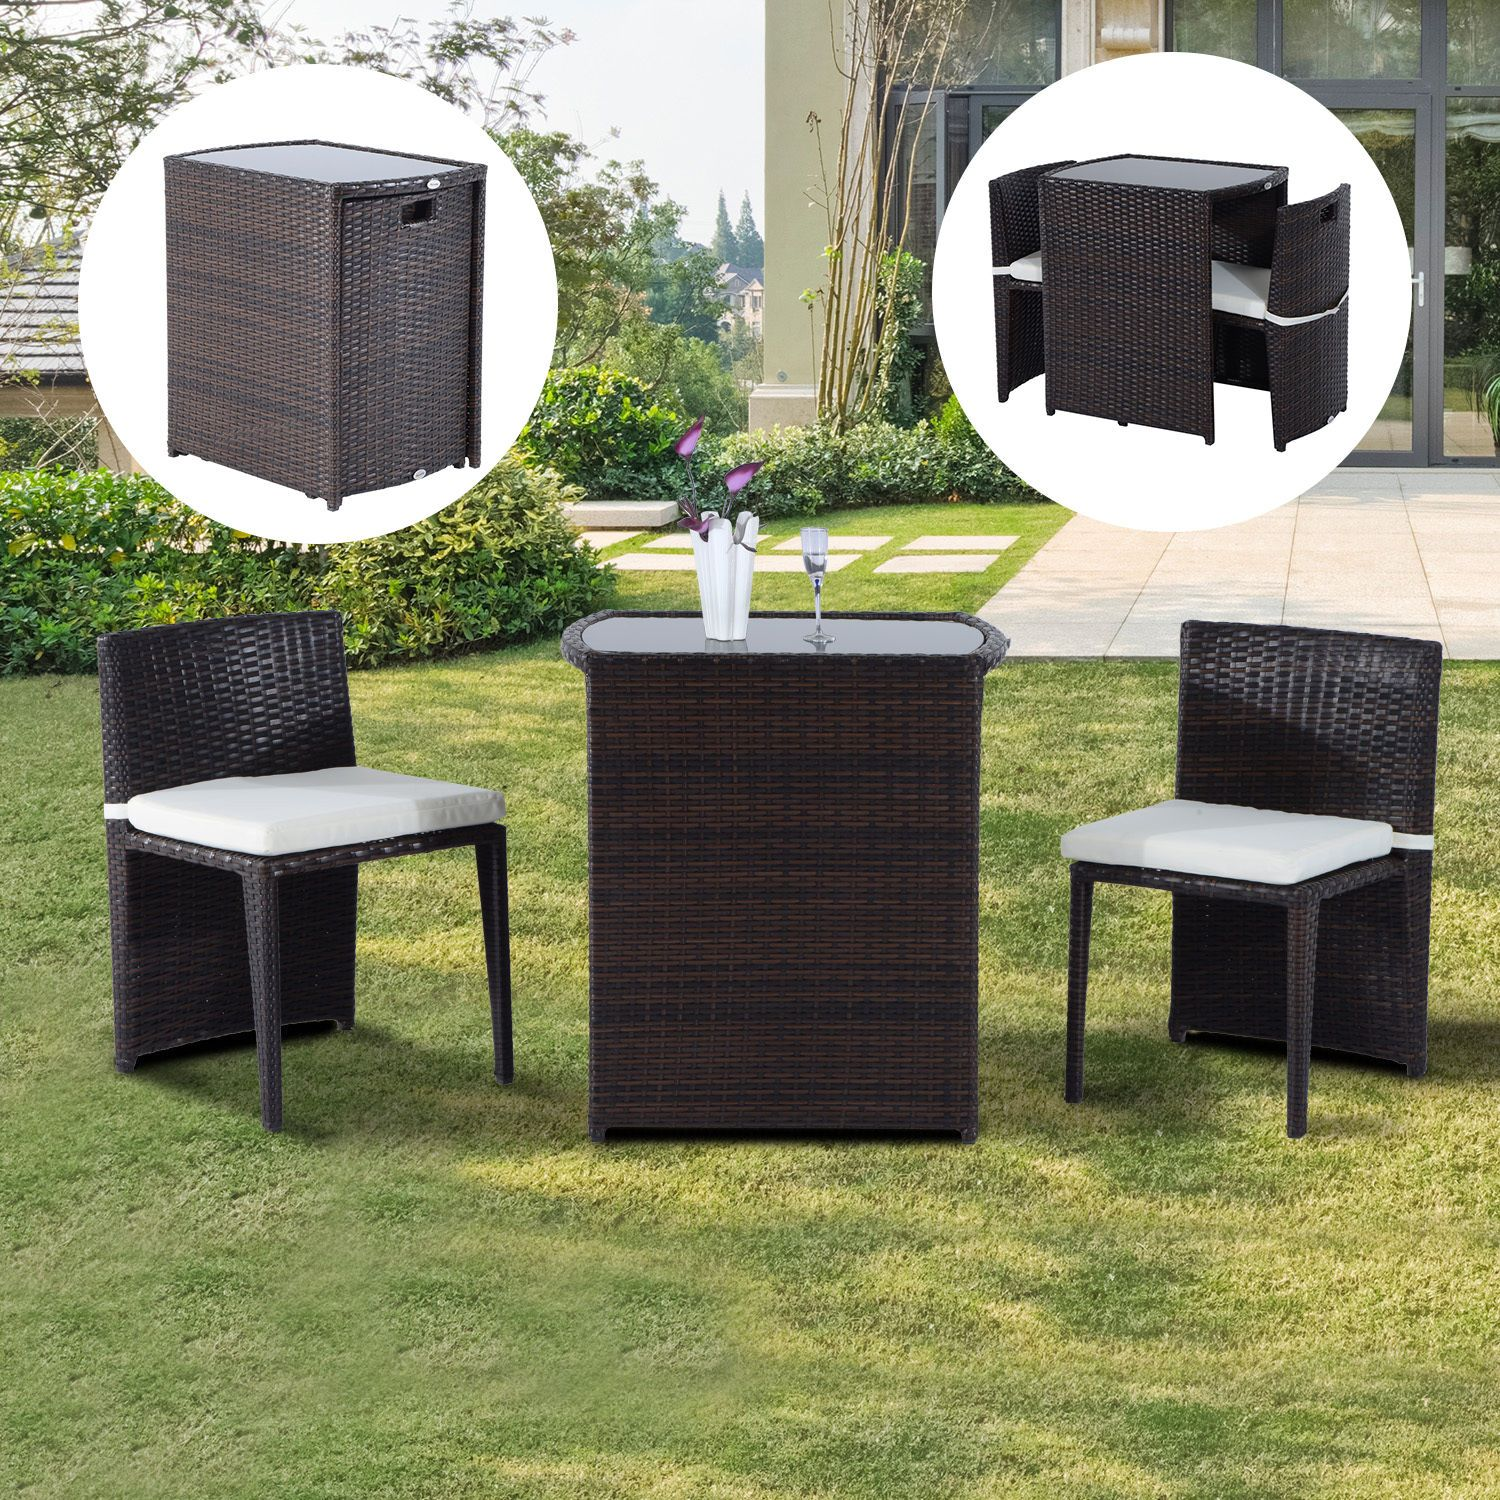 Outsunny Rattan Wicker Furniture Set 3Pc Cushioned Outdoor Patio